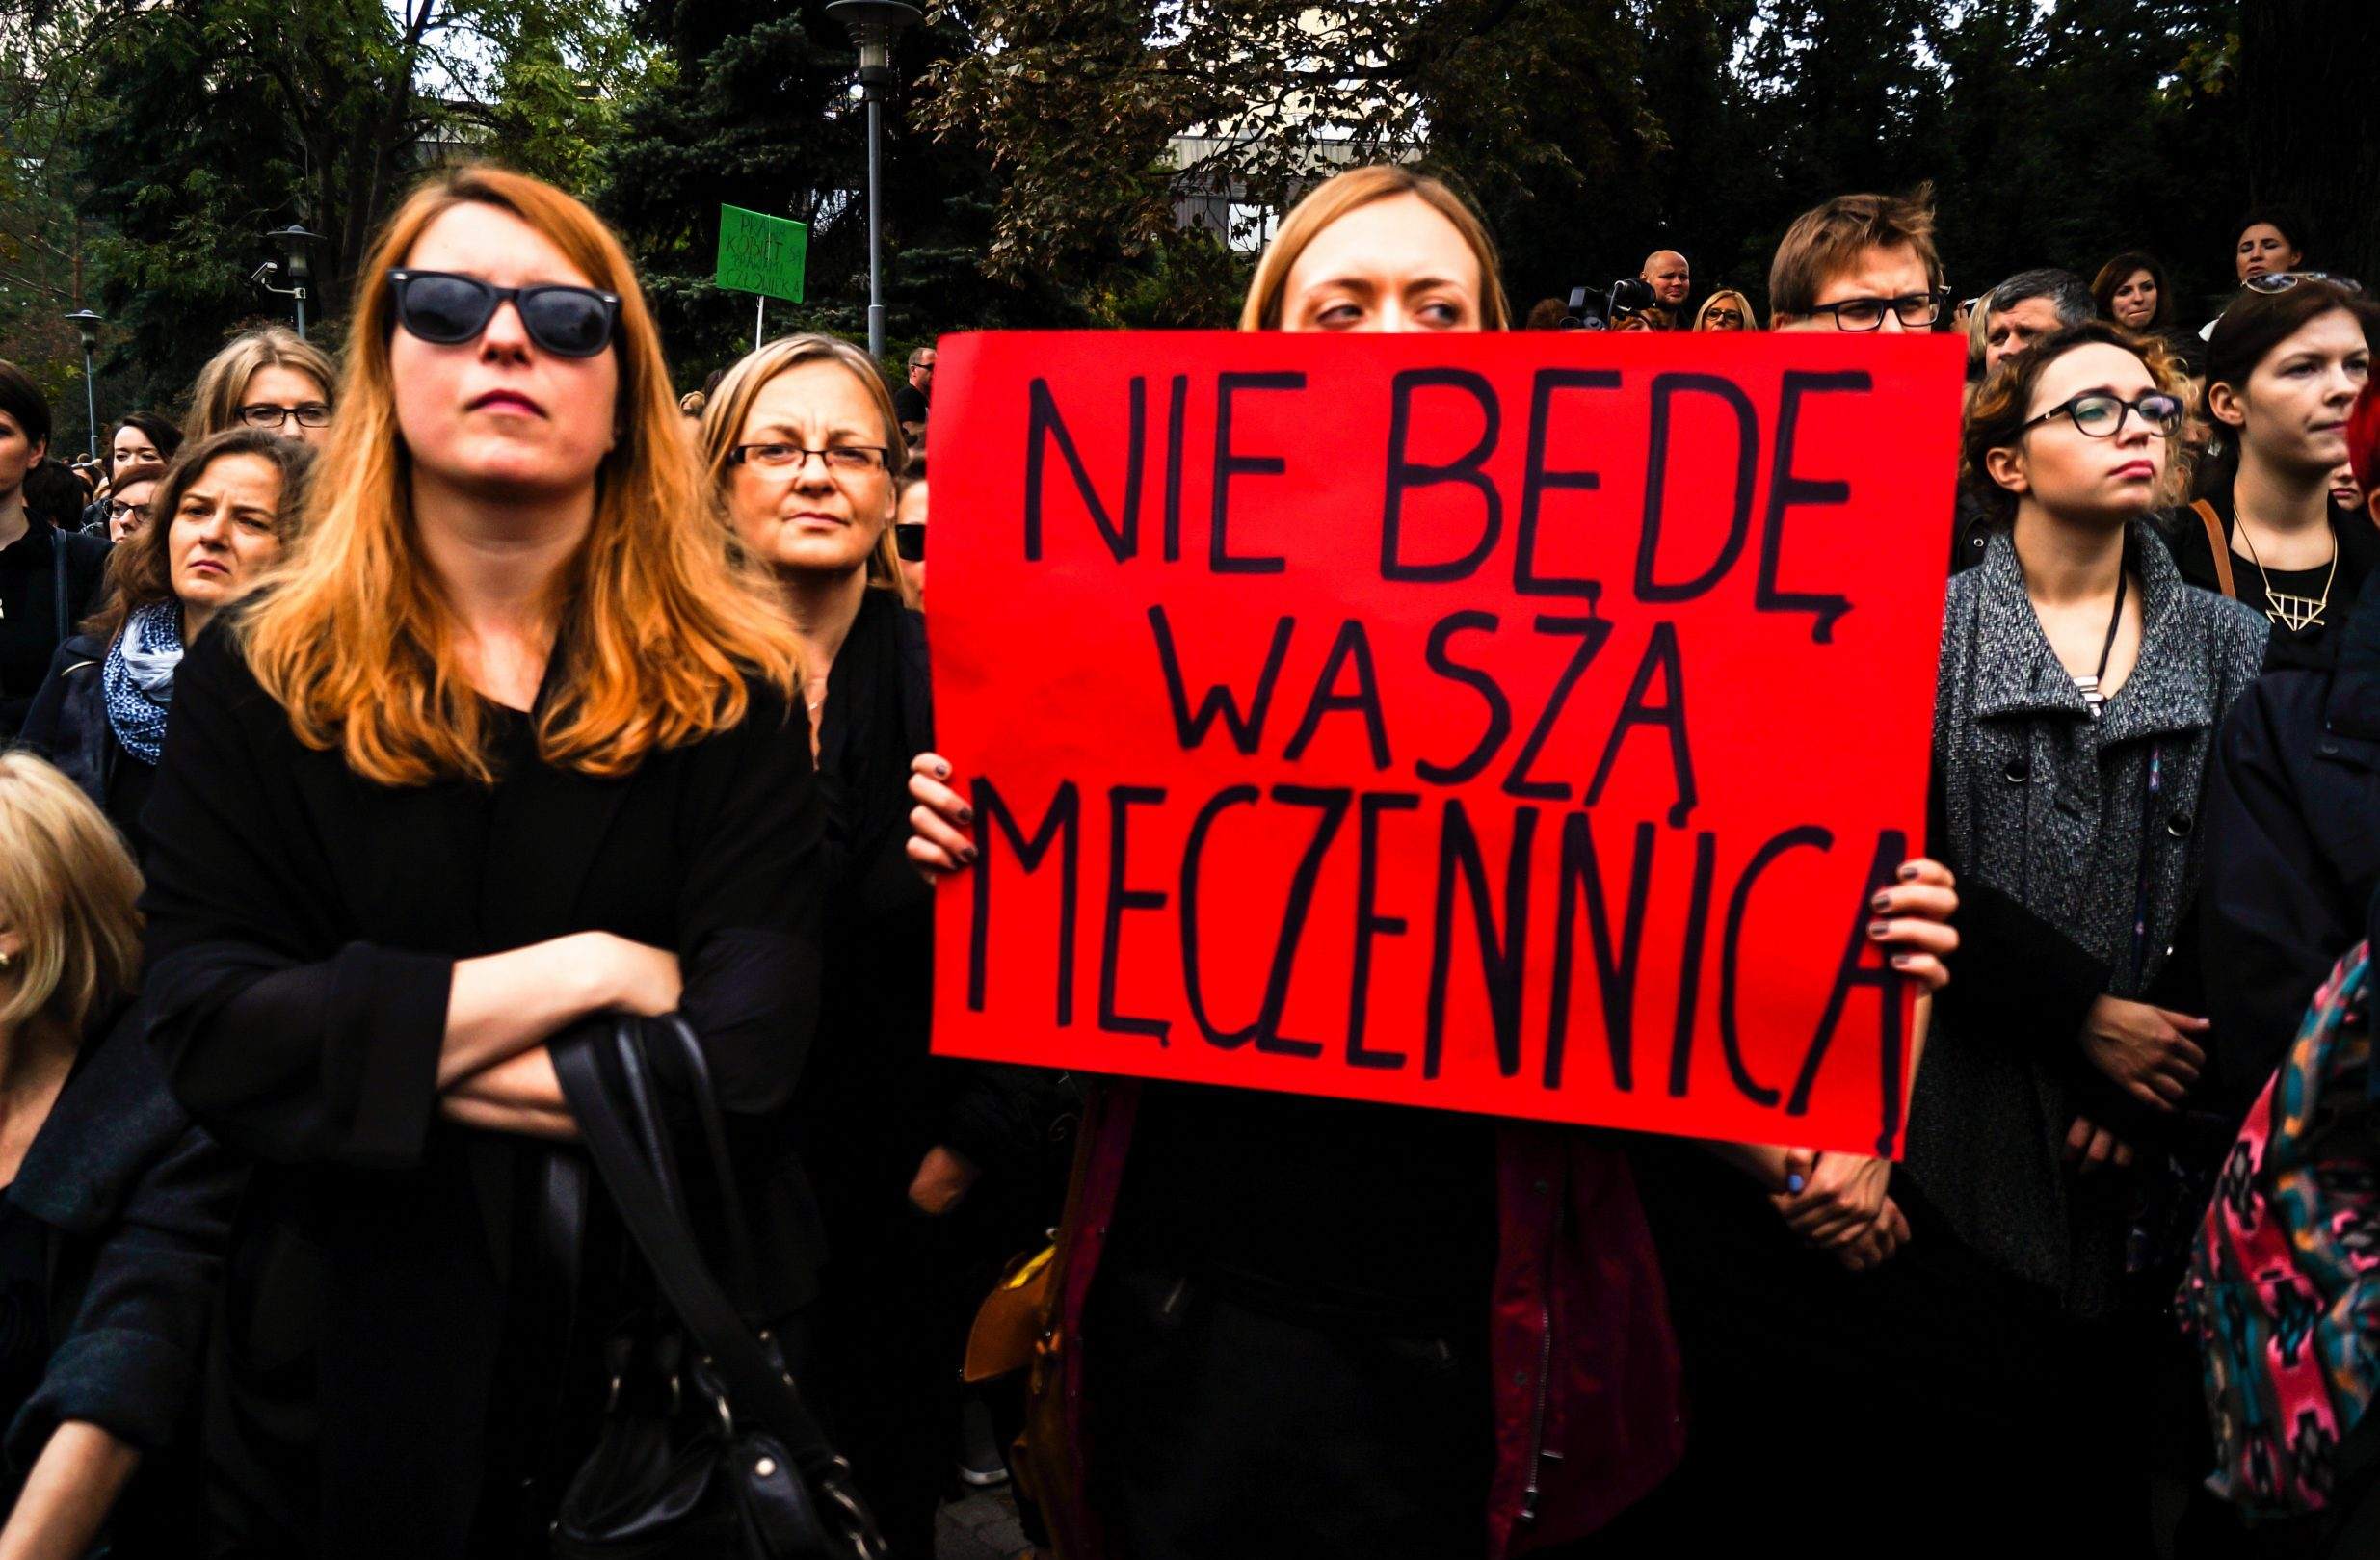 Polish abortion law is one of the most restrictive in Europe. Abortion is legal when: - the pregnancy poses a threat to mother's health or life - the foetus would be born with terminal illness or severe disability - or if the pregnancy is a result of rape or incest or other criminal act.